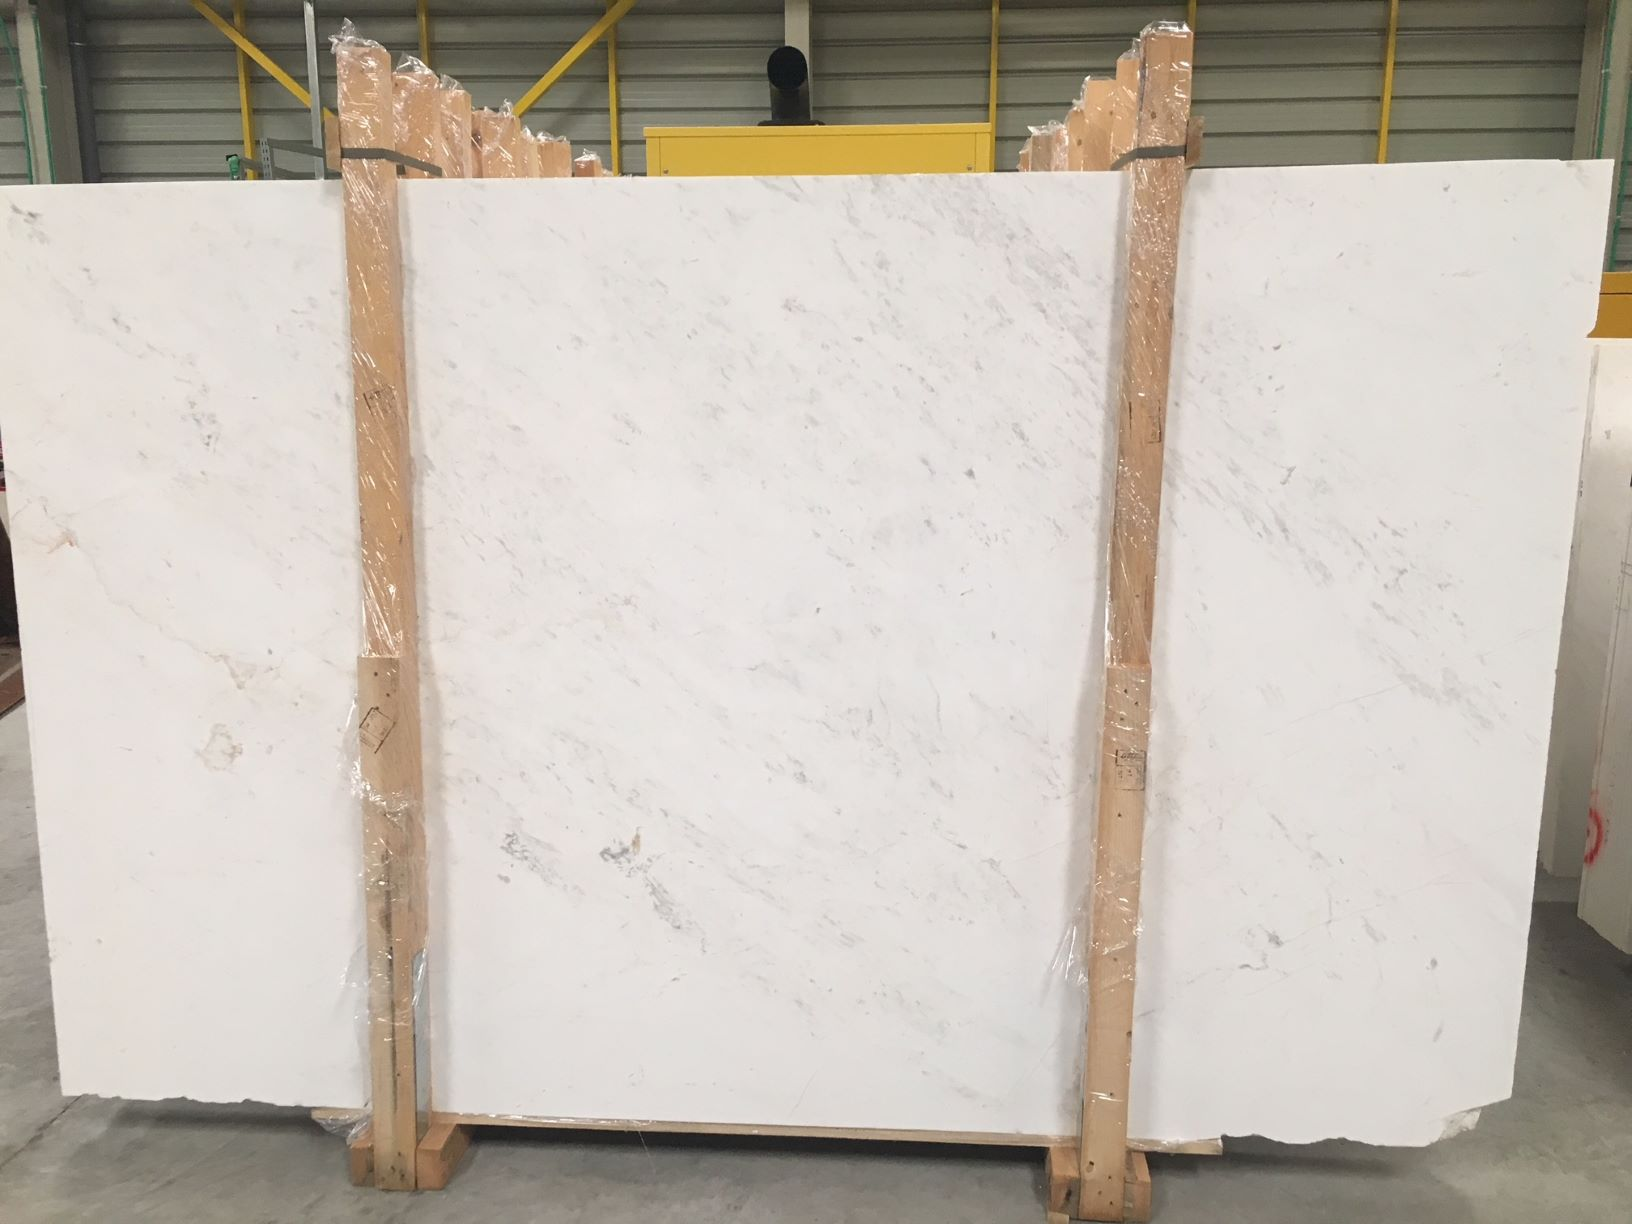 Kyknos White Polished Marble Slabs